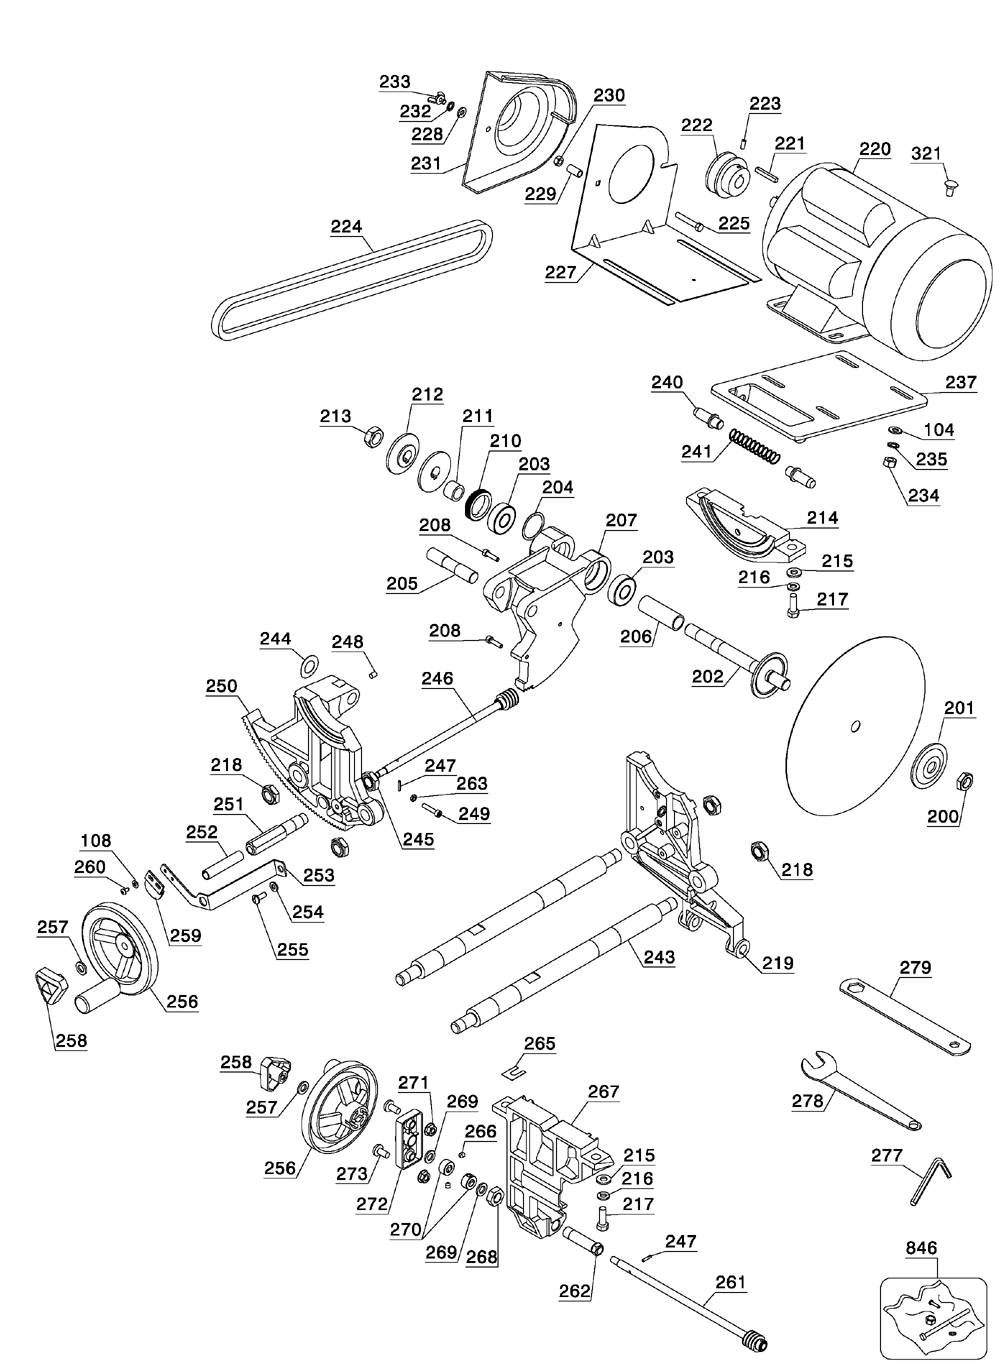 Dewalt Radial Arm Saw Wiring Diagram And Engine Craftsman Compound Miter Delta Shopmaster Table Besides De Walt Power Tool Diagrams Likewise Dw744